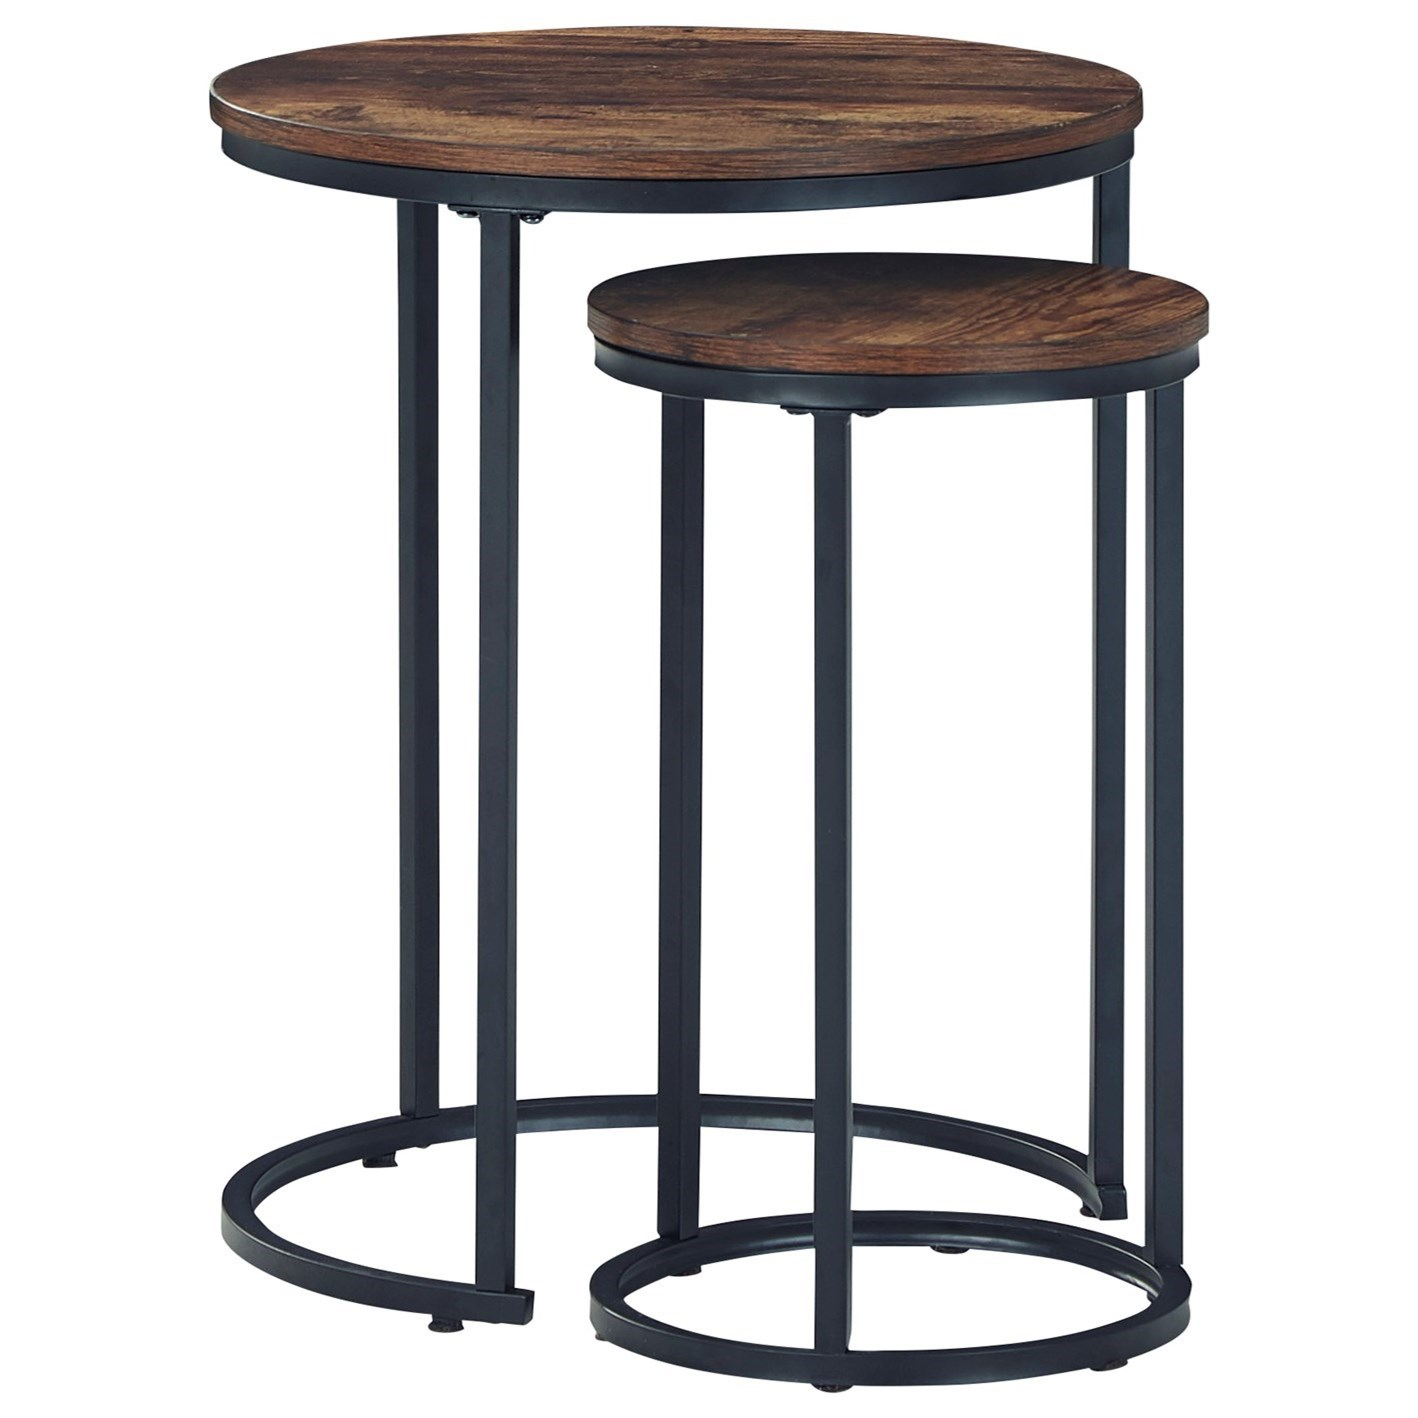 Briarsboro 2-Piece Accent Table Set by Signature Design by Ashley at Zak's Home Outlet